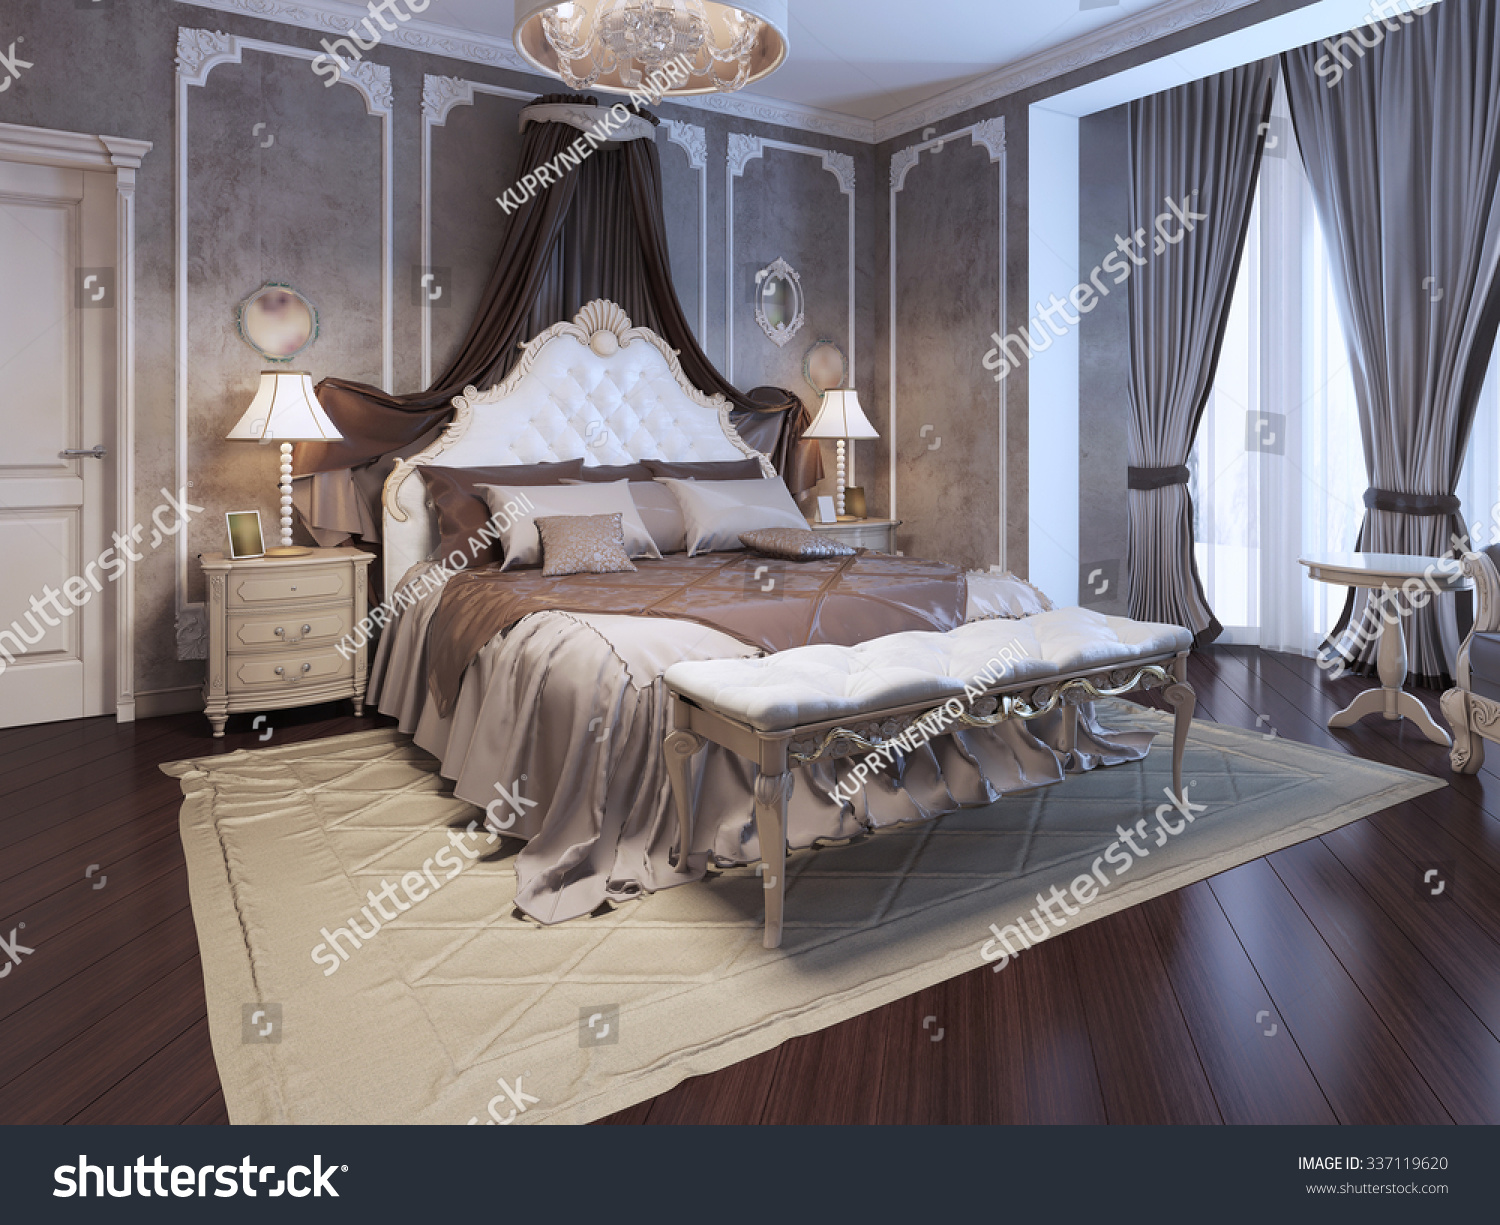 Luxury interior of art deco bedroom  Exclusive bed with white headboard and  curtains  dressed. Luxury Interior Art Deco Bedroom Exclusive Stock Illustration